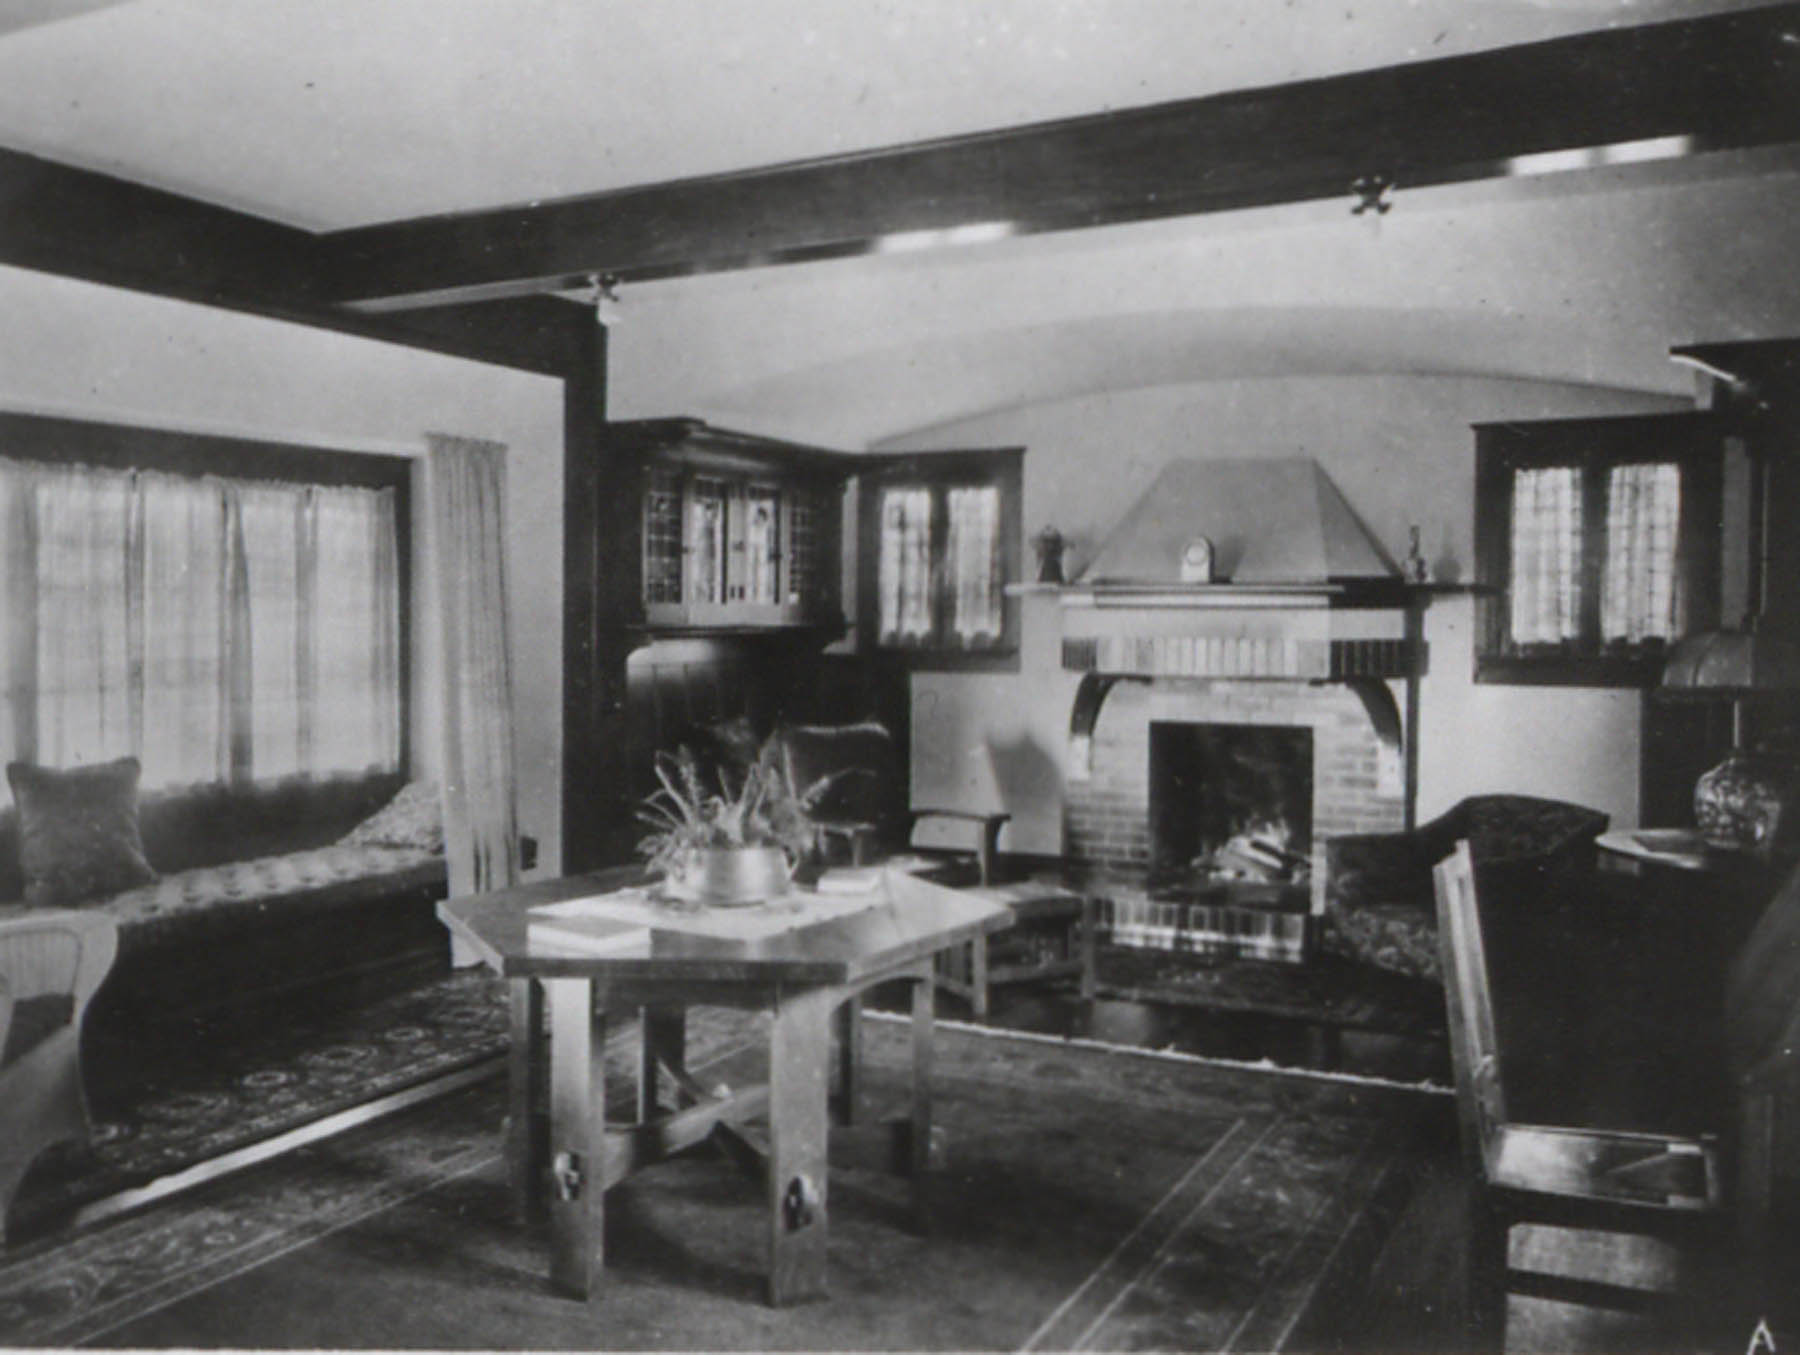 At left, a window seat with a box cushion can be seen in this vintage Arts & Crafts interior.